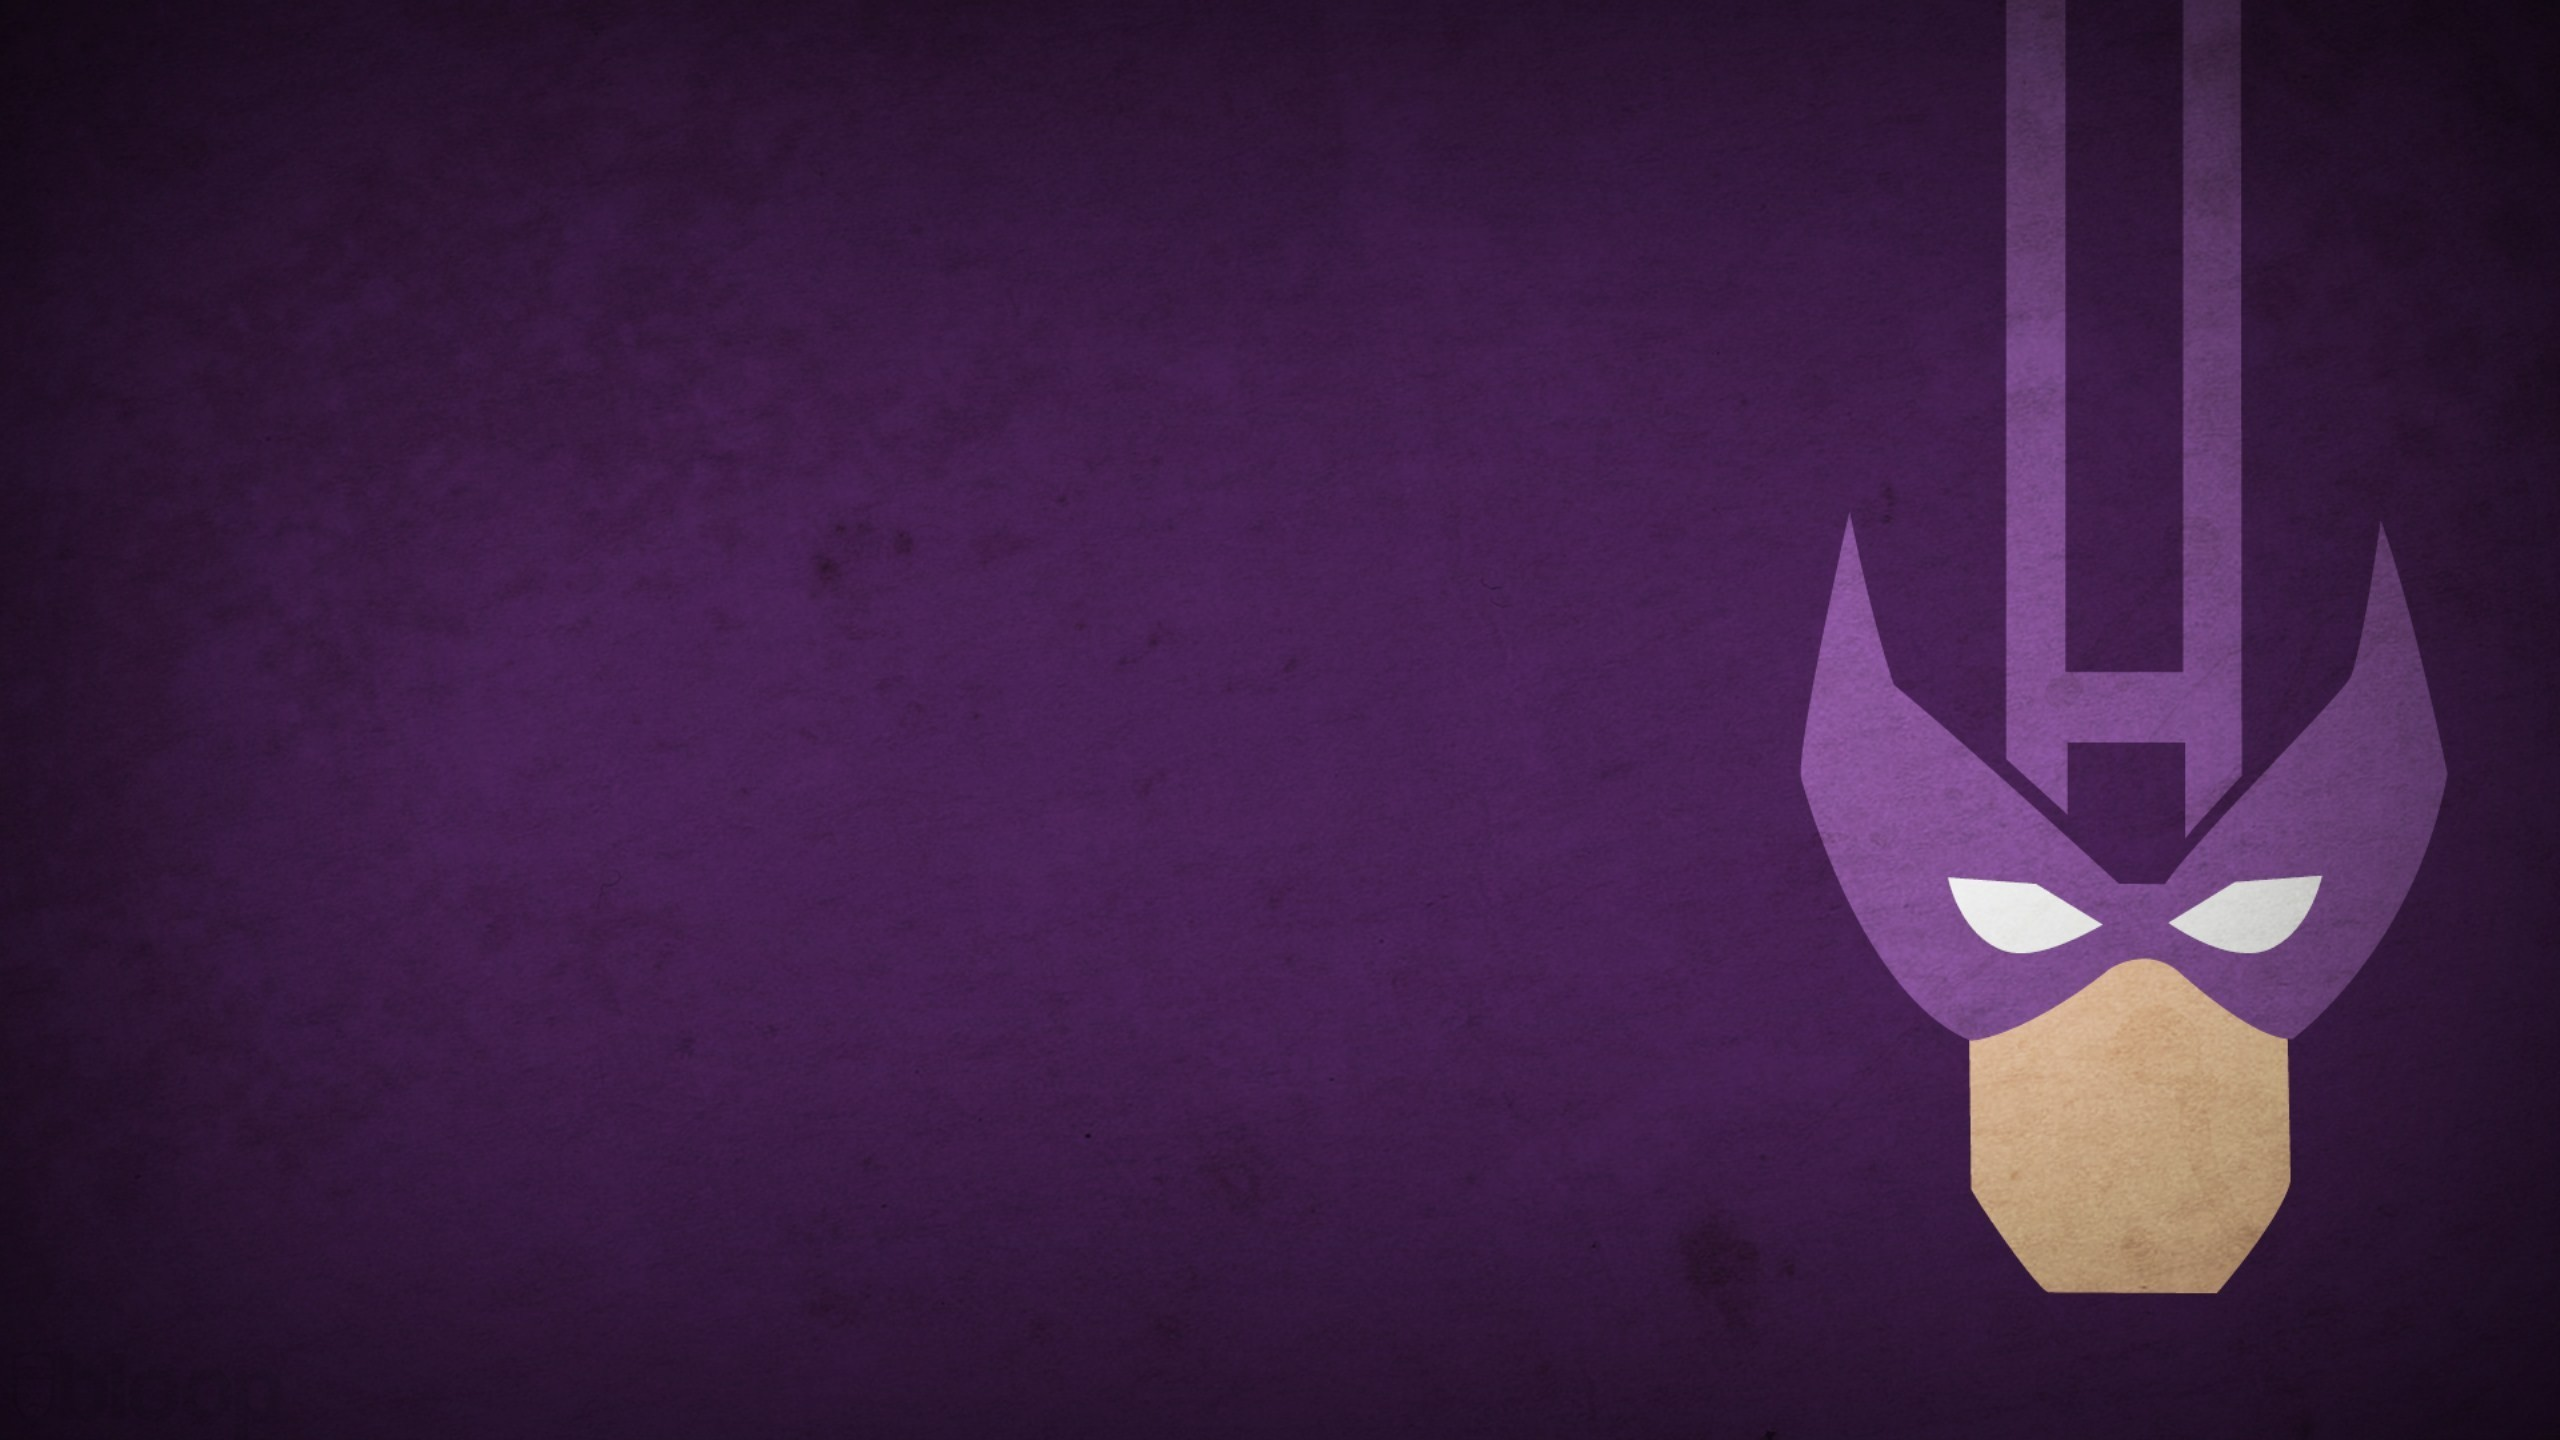 Hawkeye Wallpaper Marvel 72 images 2560x1440